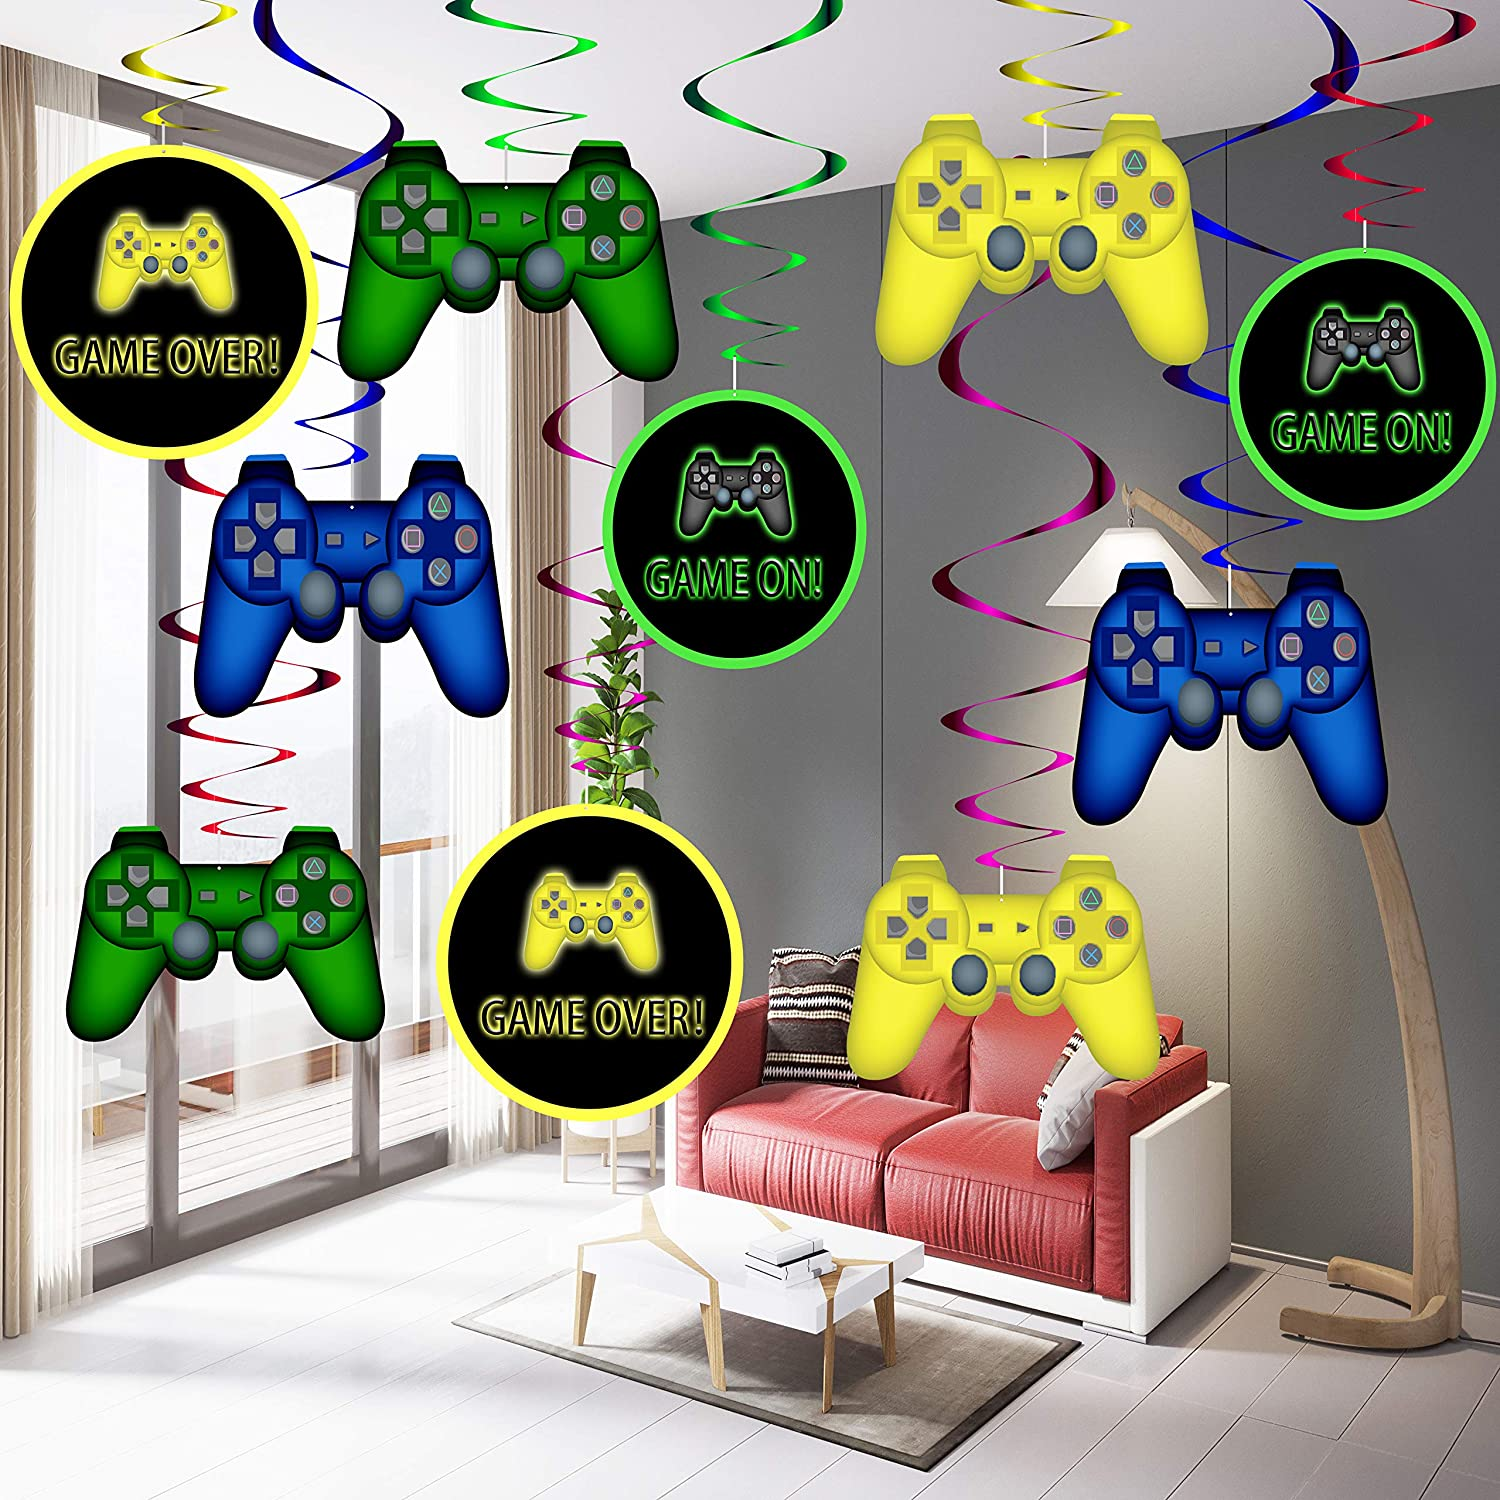 Amazon Com 30ct Video Game Hanging Swirl Decorations Video Game Party Decorations Video Game Themed Birthday Party Supplies Toys Games